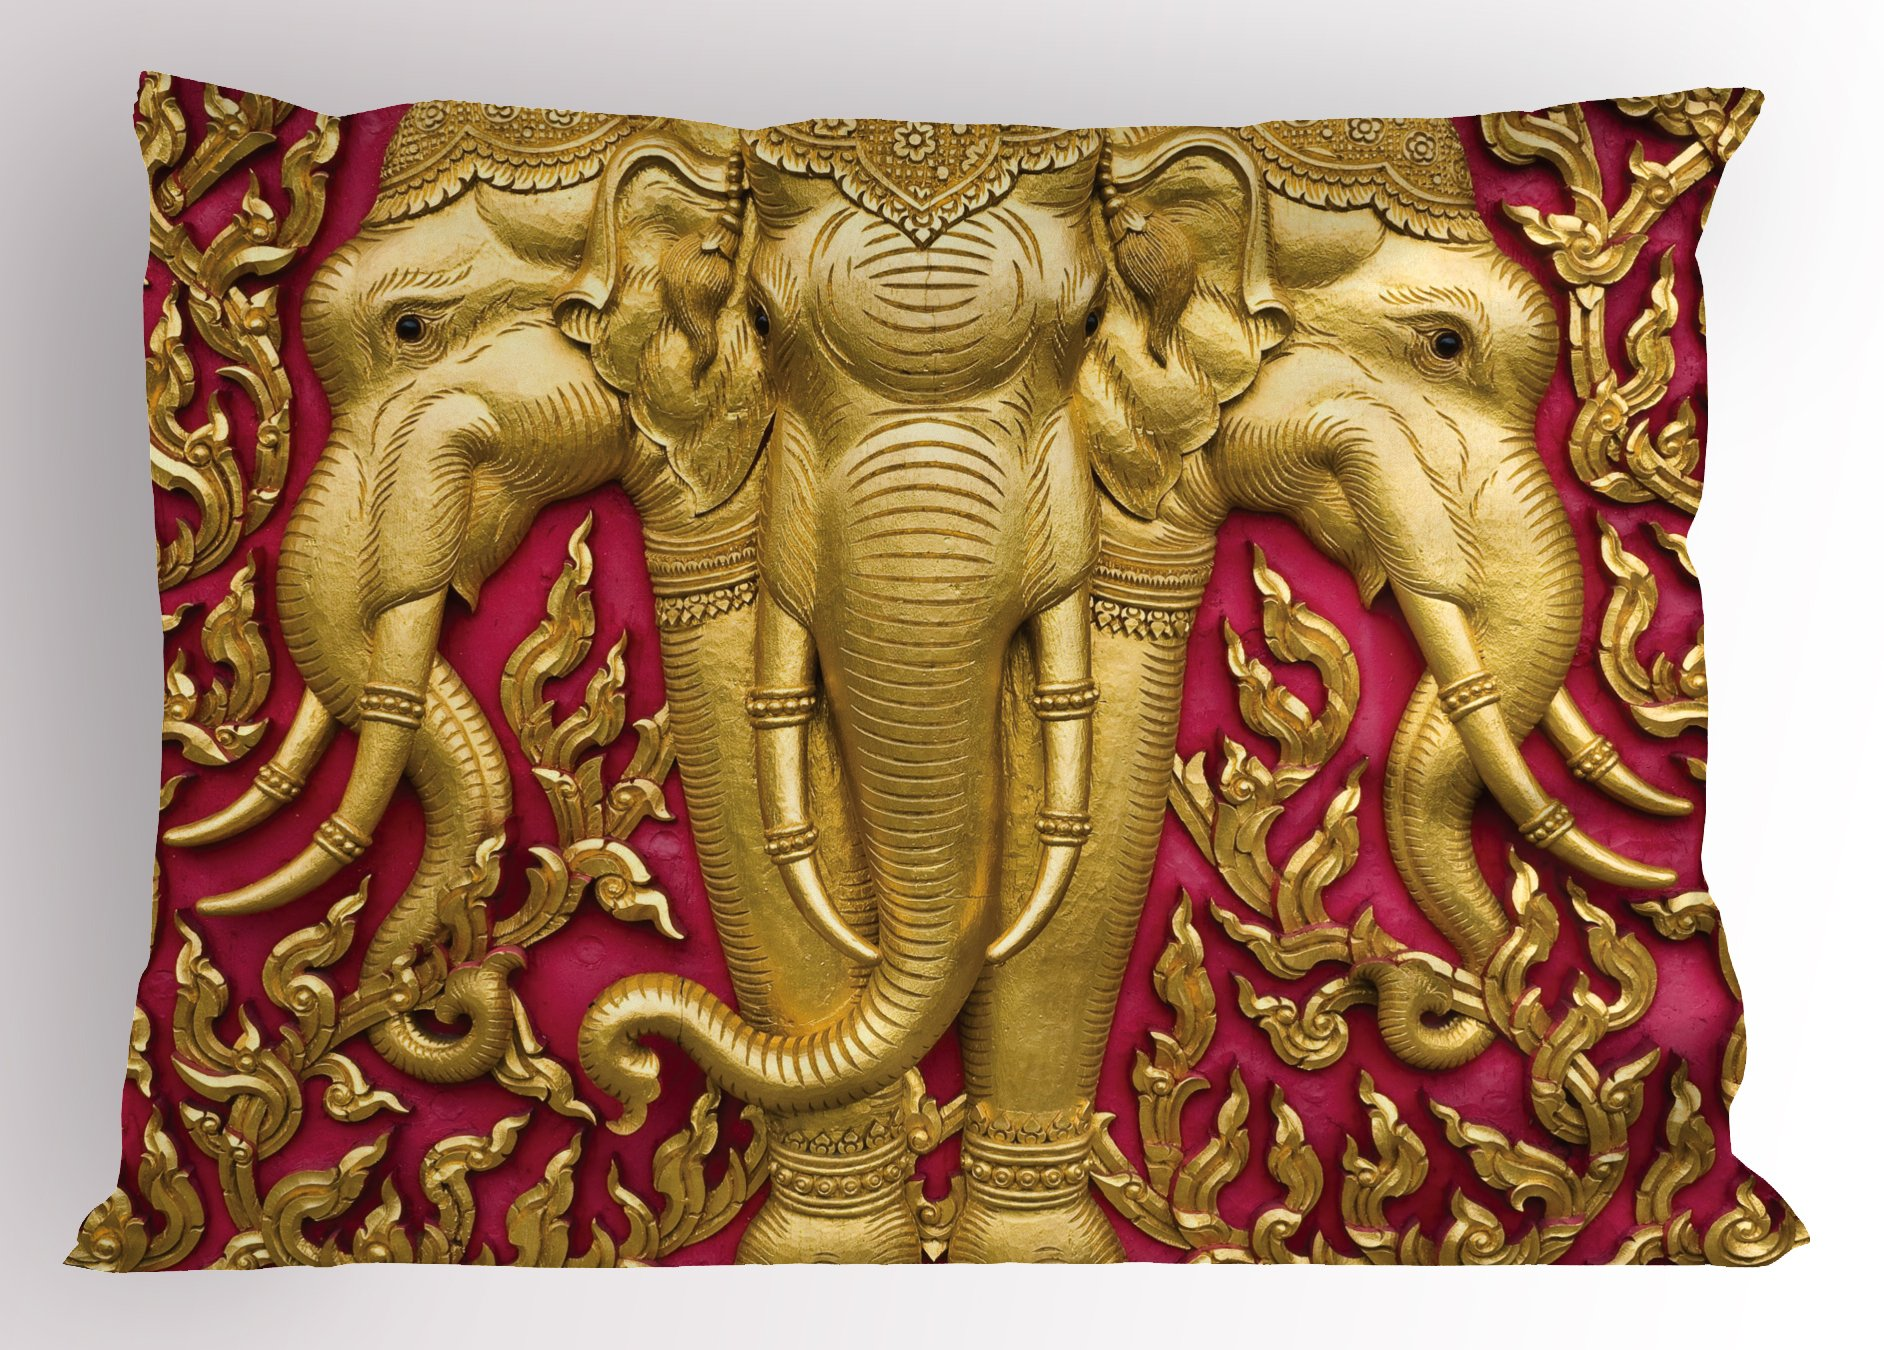 Ambesonne Elephant Pillow Sham, Yellow Toned Elephant Motif on Door Thai Temple Spirituality Statue Classic, Decorative Standard King Size Printed Pillowcase, 36 X 20 Inches, Fuchsia Mustard by Ambesonne